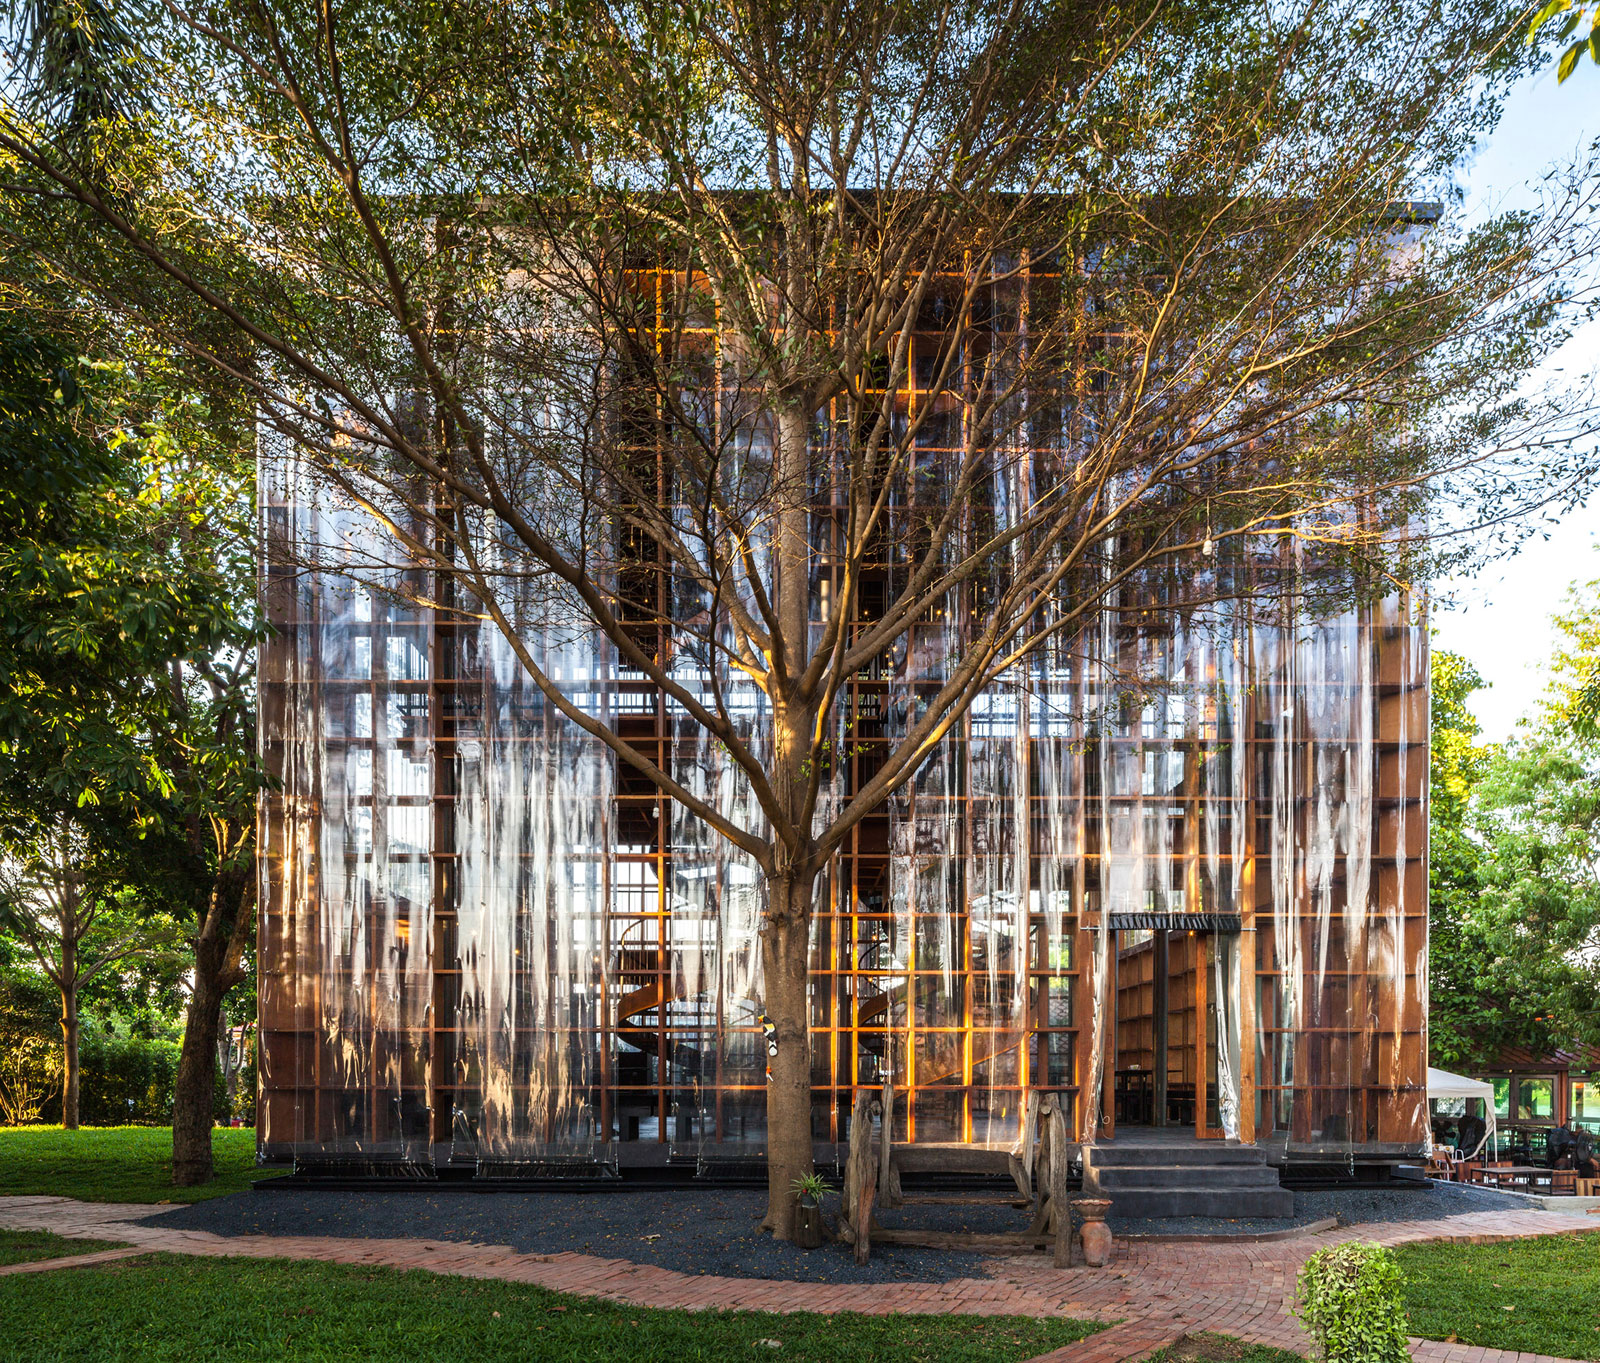 wine-bangkok-project-studio-architecture-public-leisure-thailand-_dezeen_2364_col_22